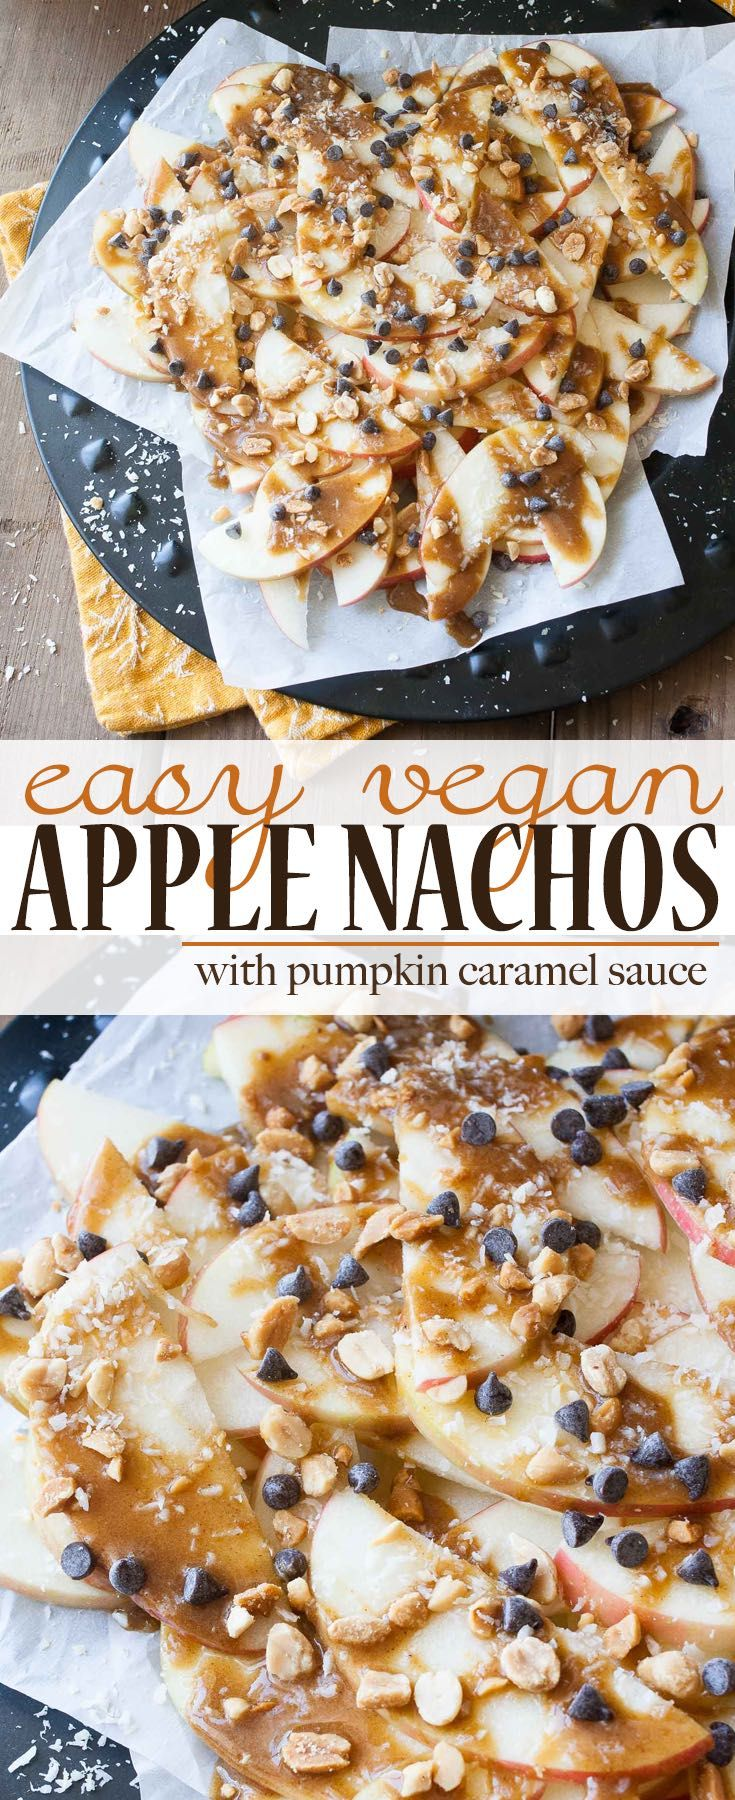 113 best vegan kids recipes images on pinterest vegan food a fall inspired dessert with a healthy twist this easy vegan apple nachos recipe will satisfy your sweet tooth without the guilt forumfinder Choice Image